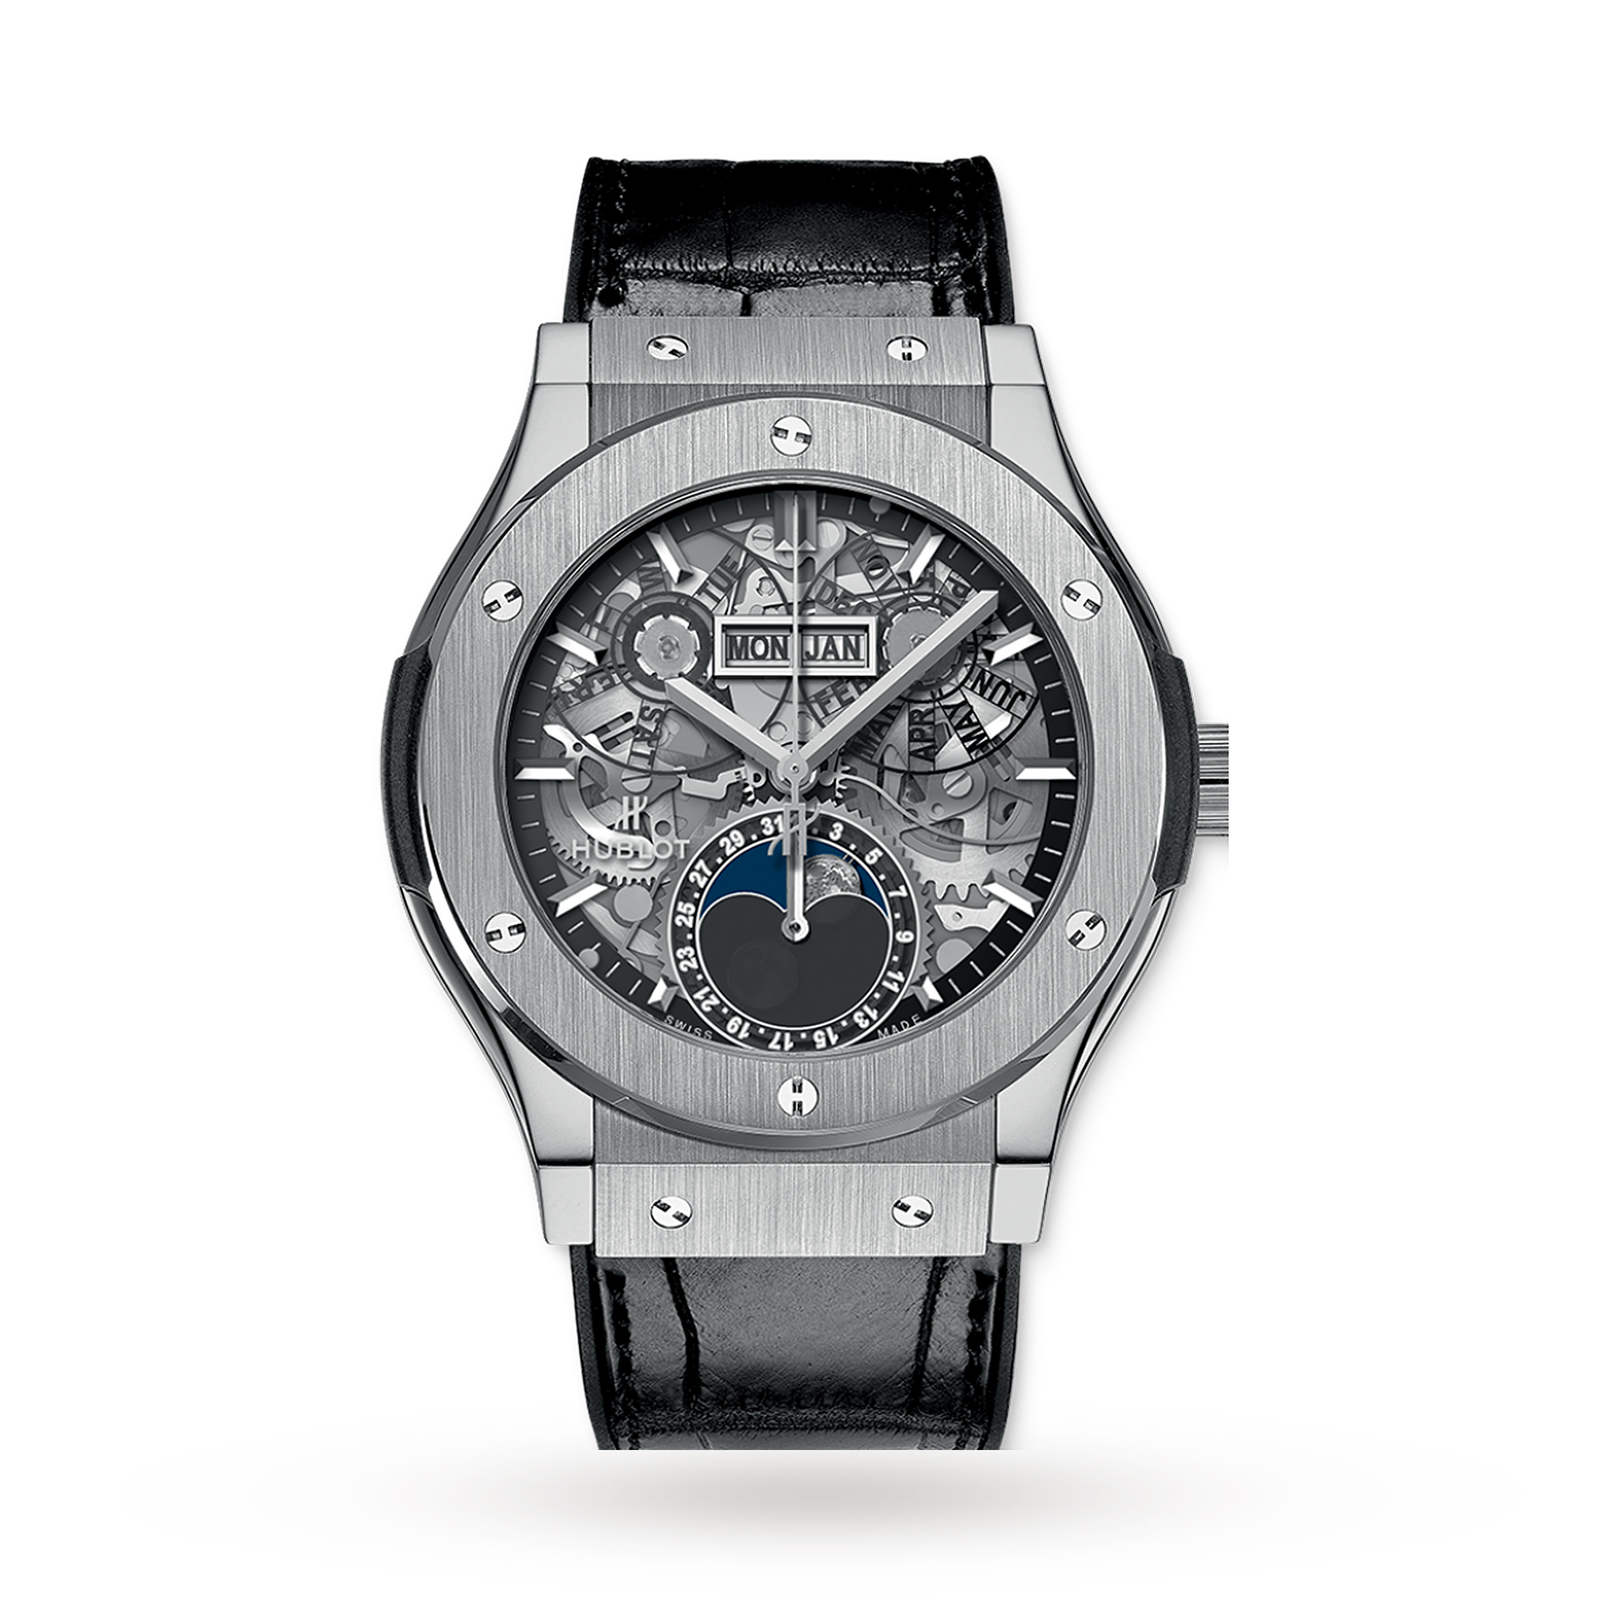 Hublot aerofusion moonphase titanium mens watch luxury watches watches watches of switzerland for Titanium watches